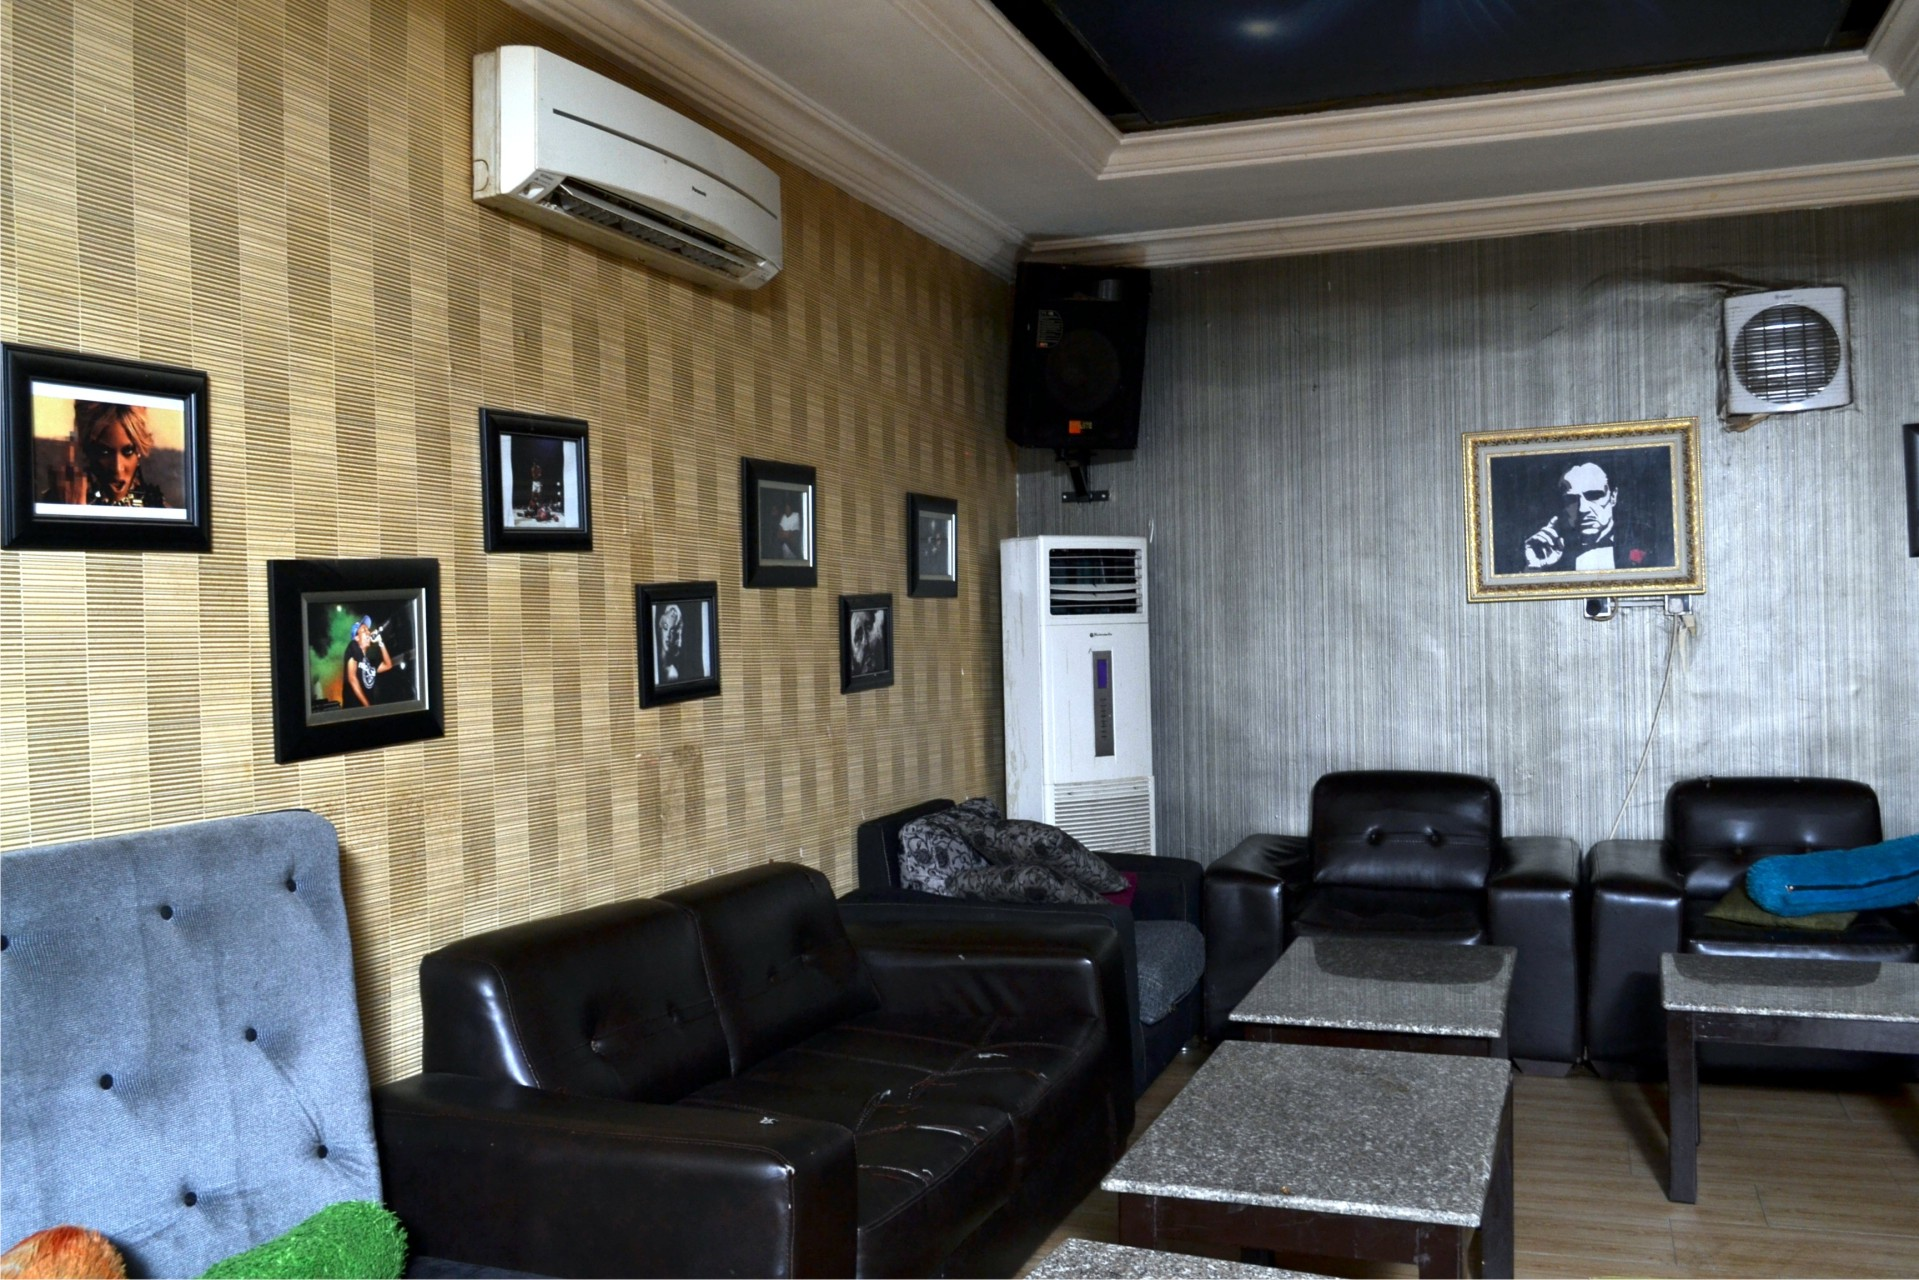 Frankville Hotel Karu Abuja Cheap Hotel In Abuja With Exotic And